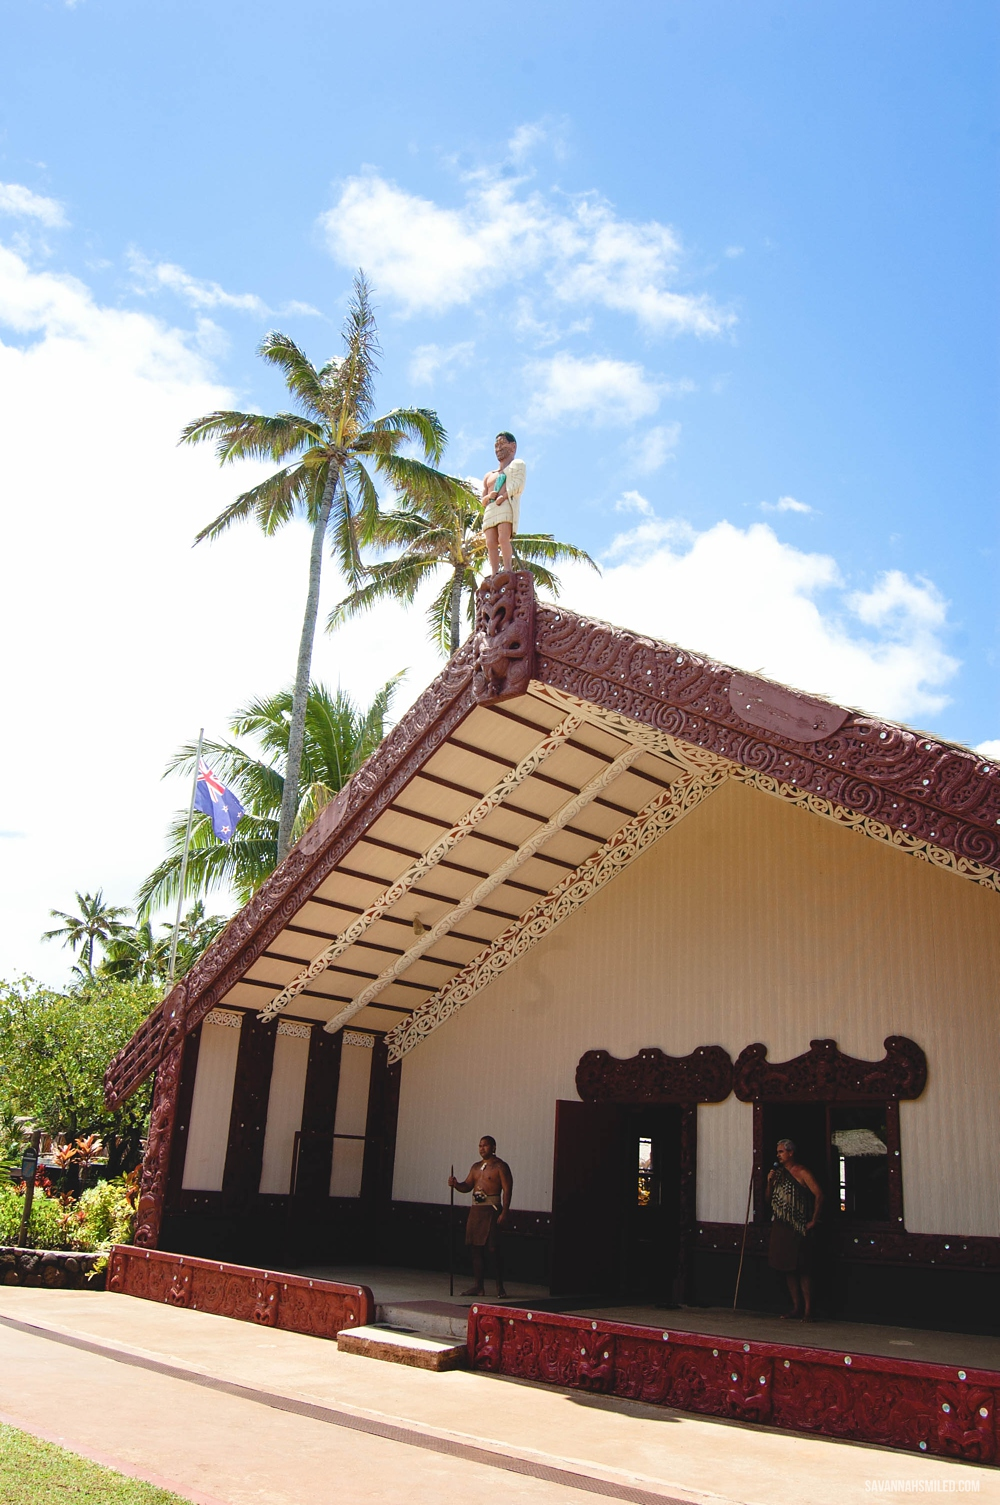 polynesian-hawaii-cultural-center-7.jpg